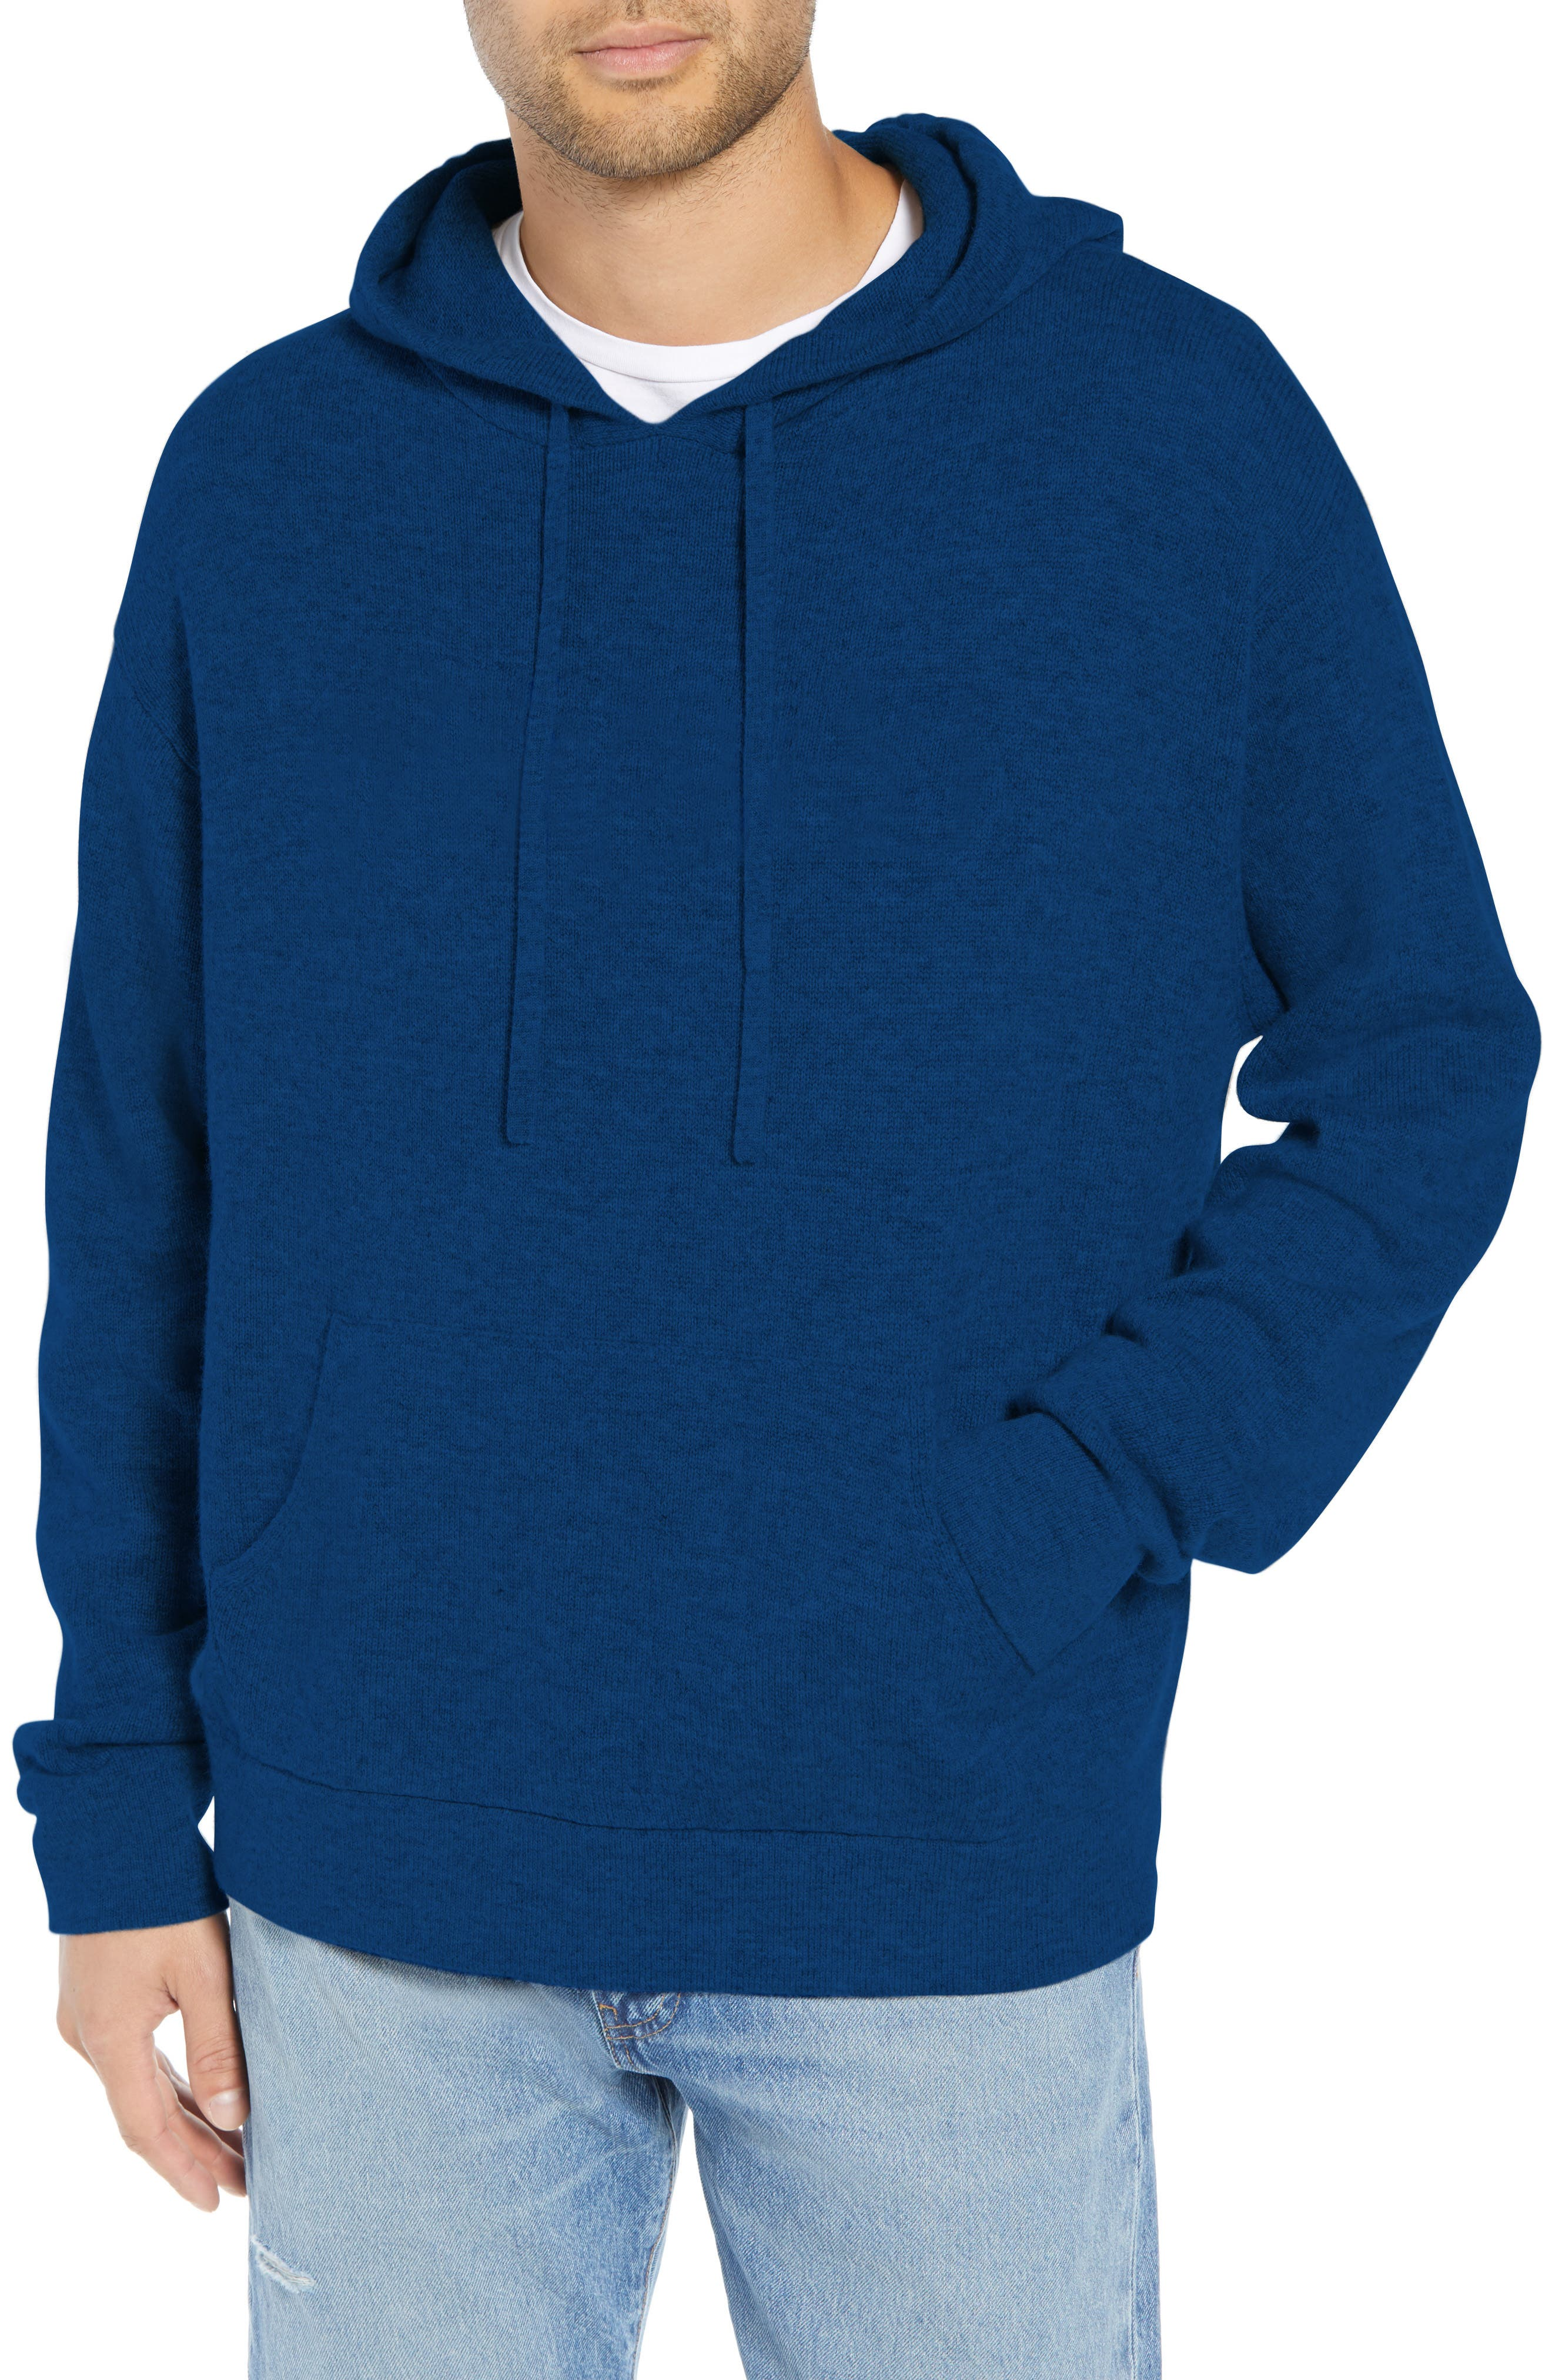 Classic Fit Hoodie Sweater,                             Main thumbnail 1, color,                             NAVY